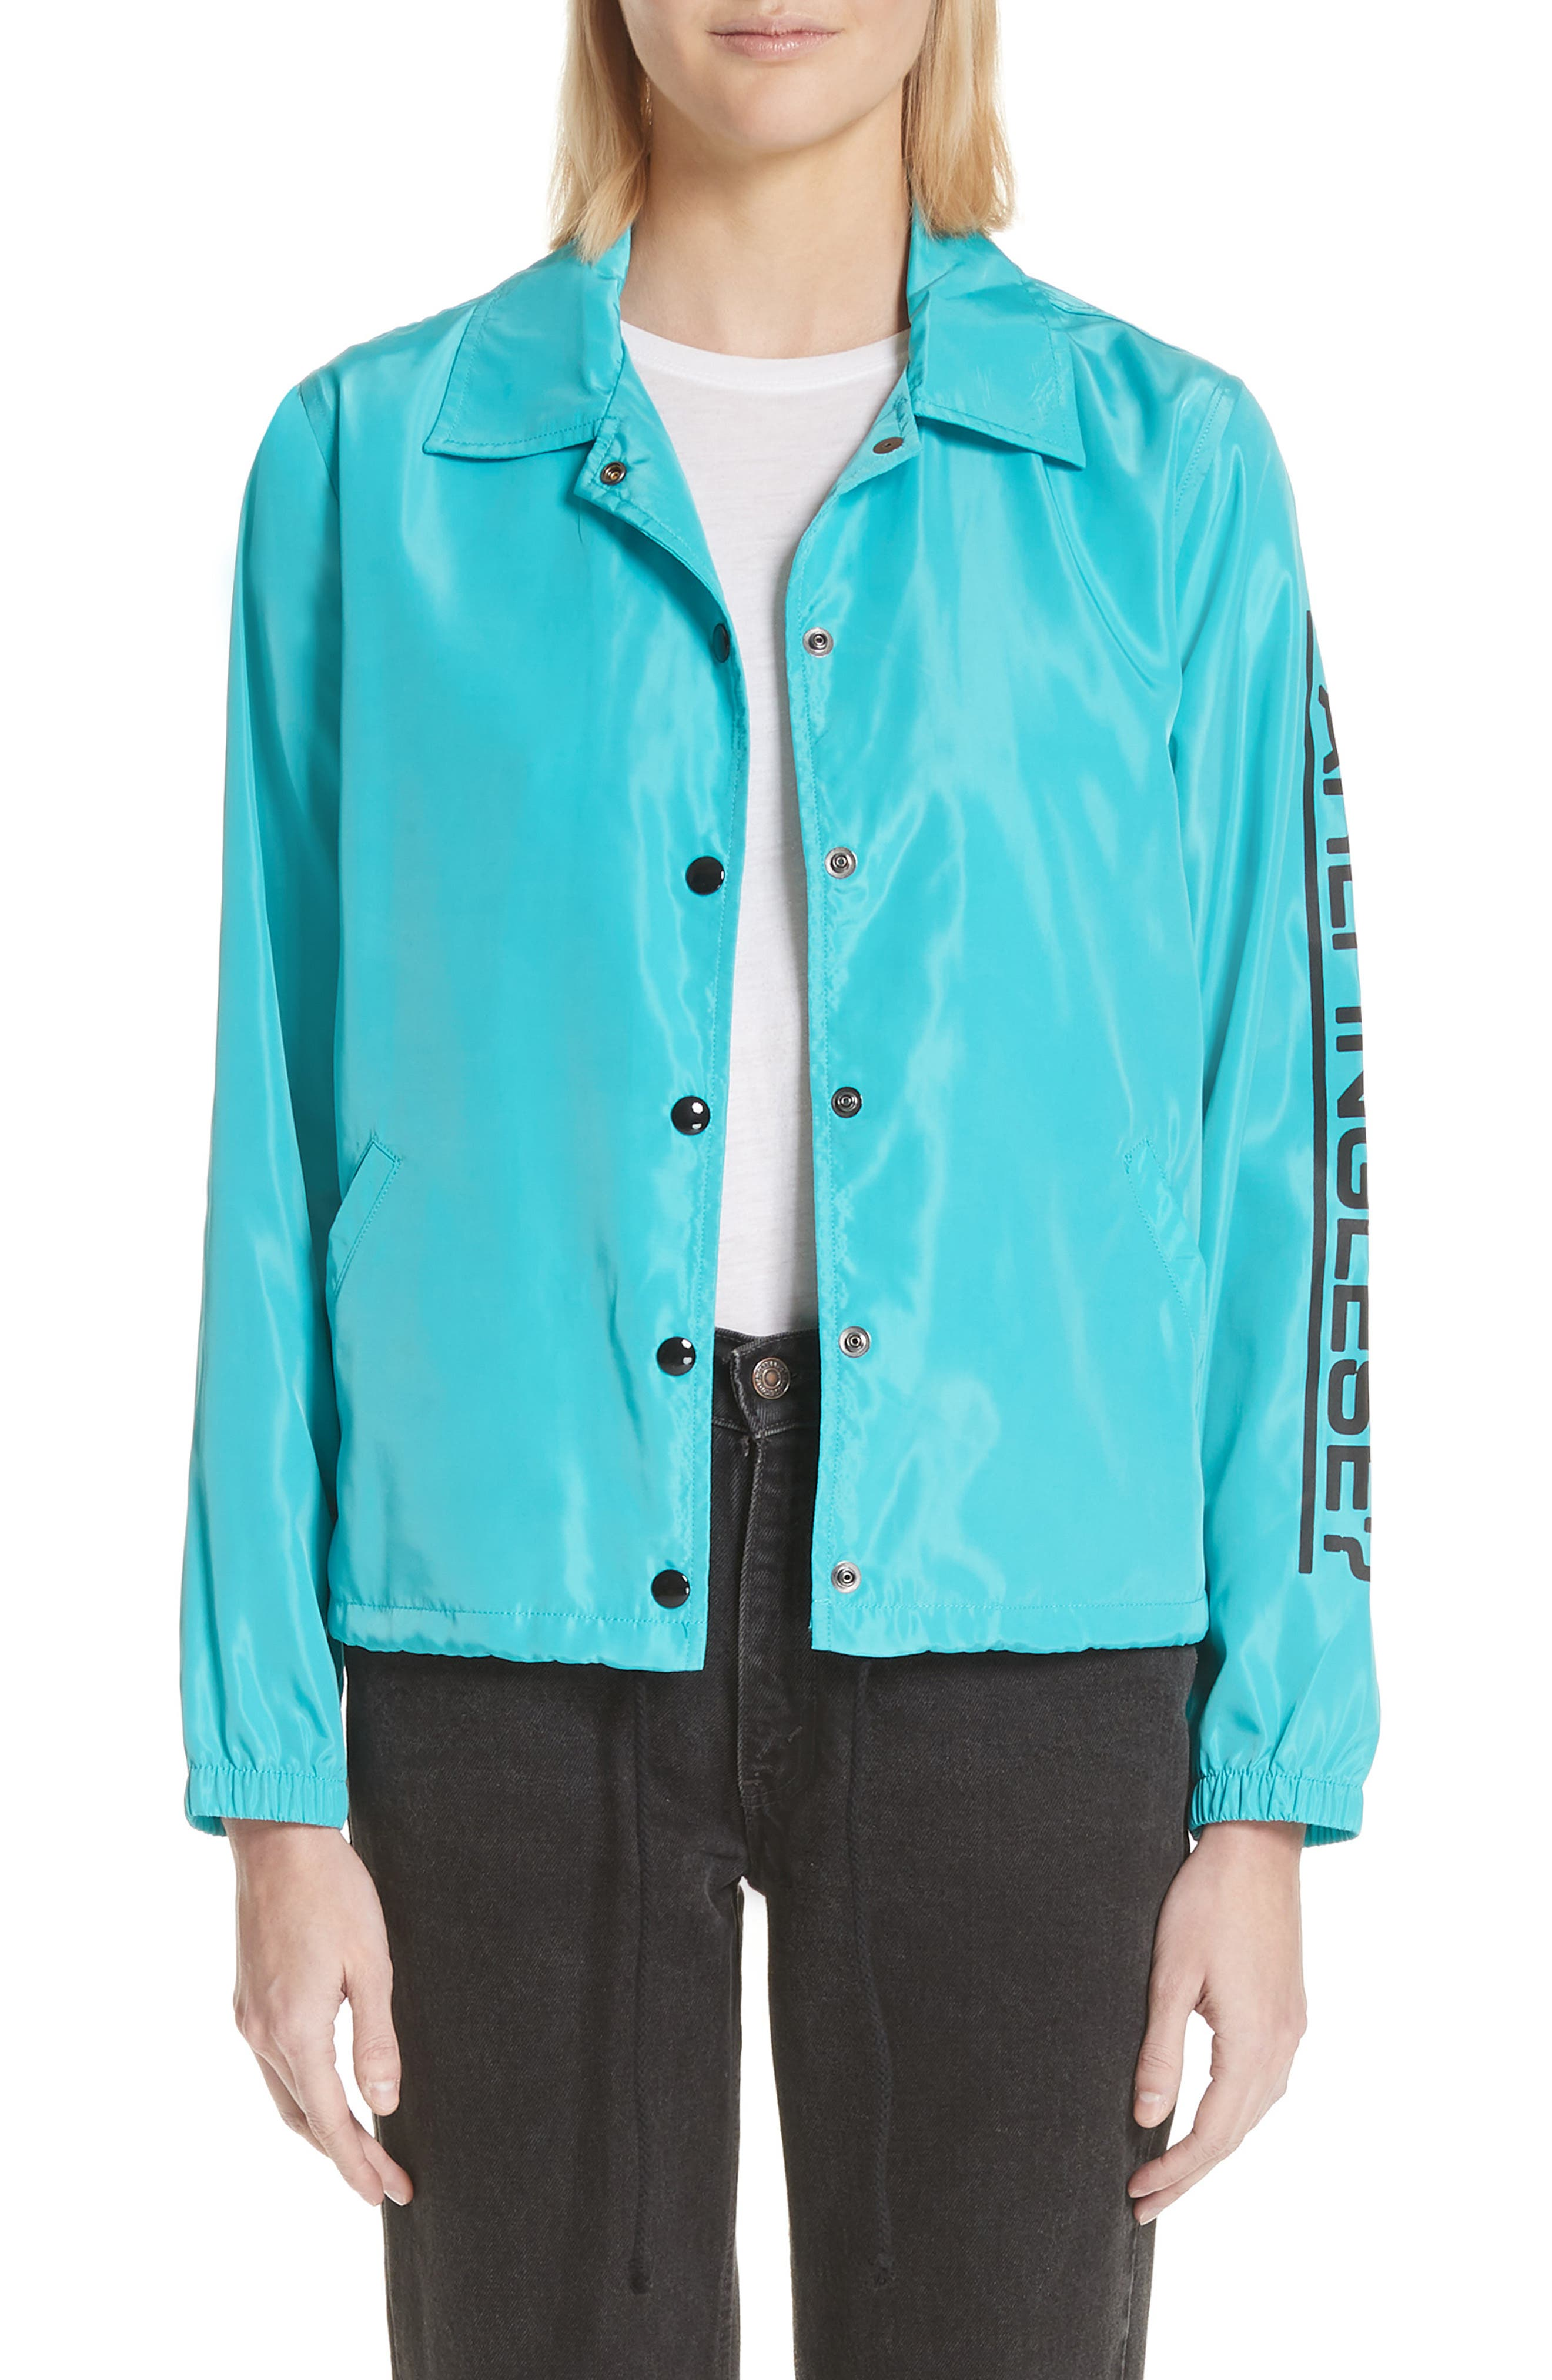 Parli Inglese Coach Jacket,                         Main,                         color, Turquoise